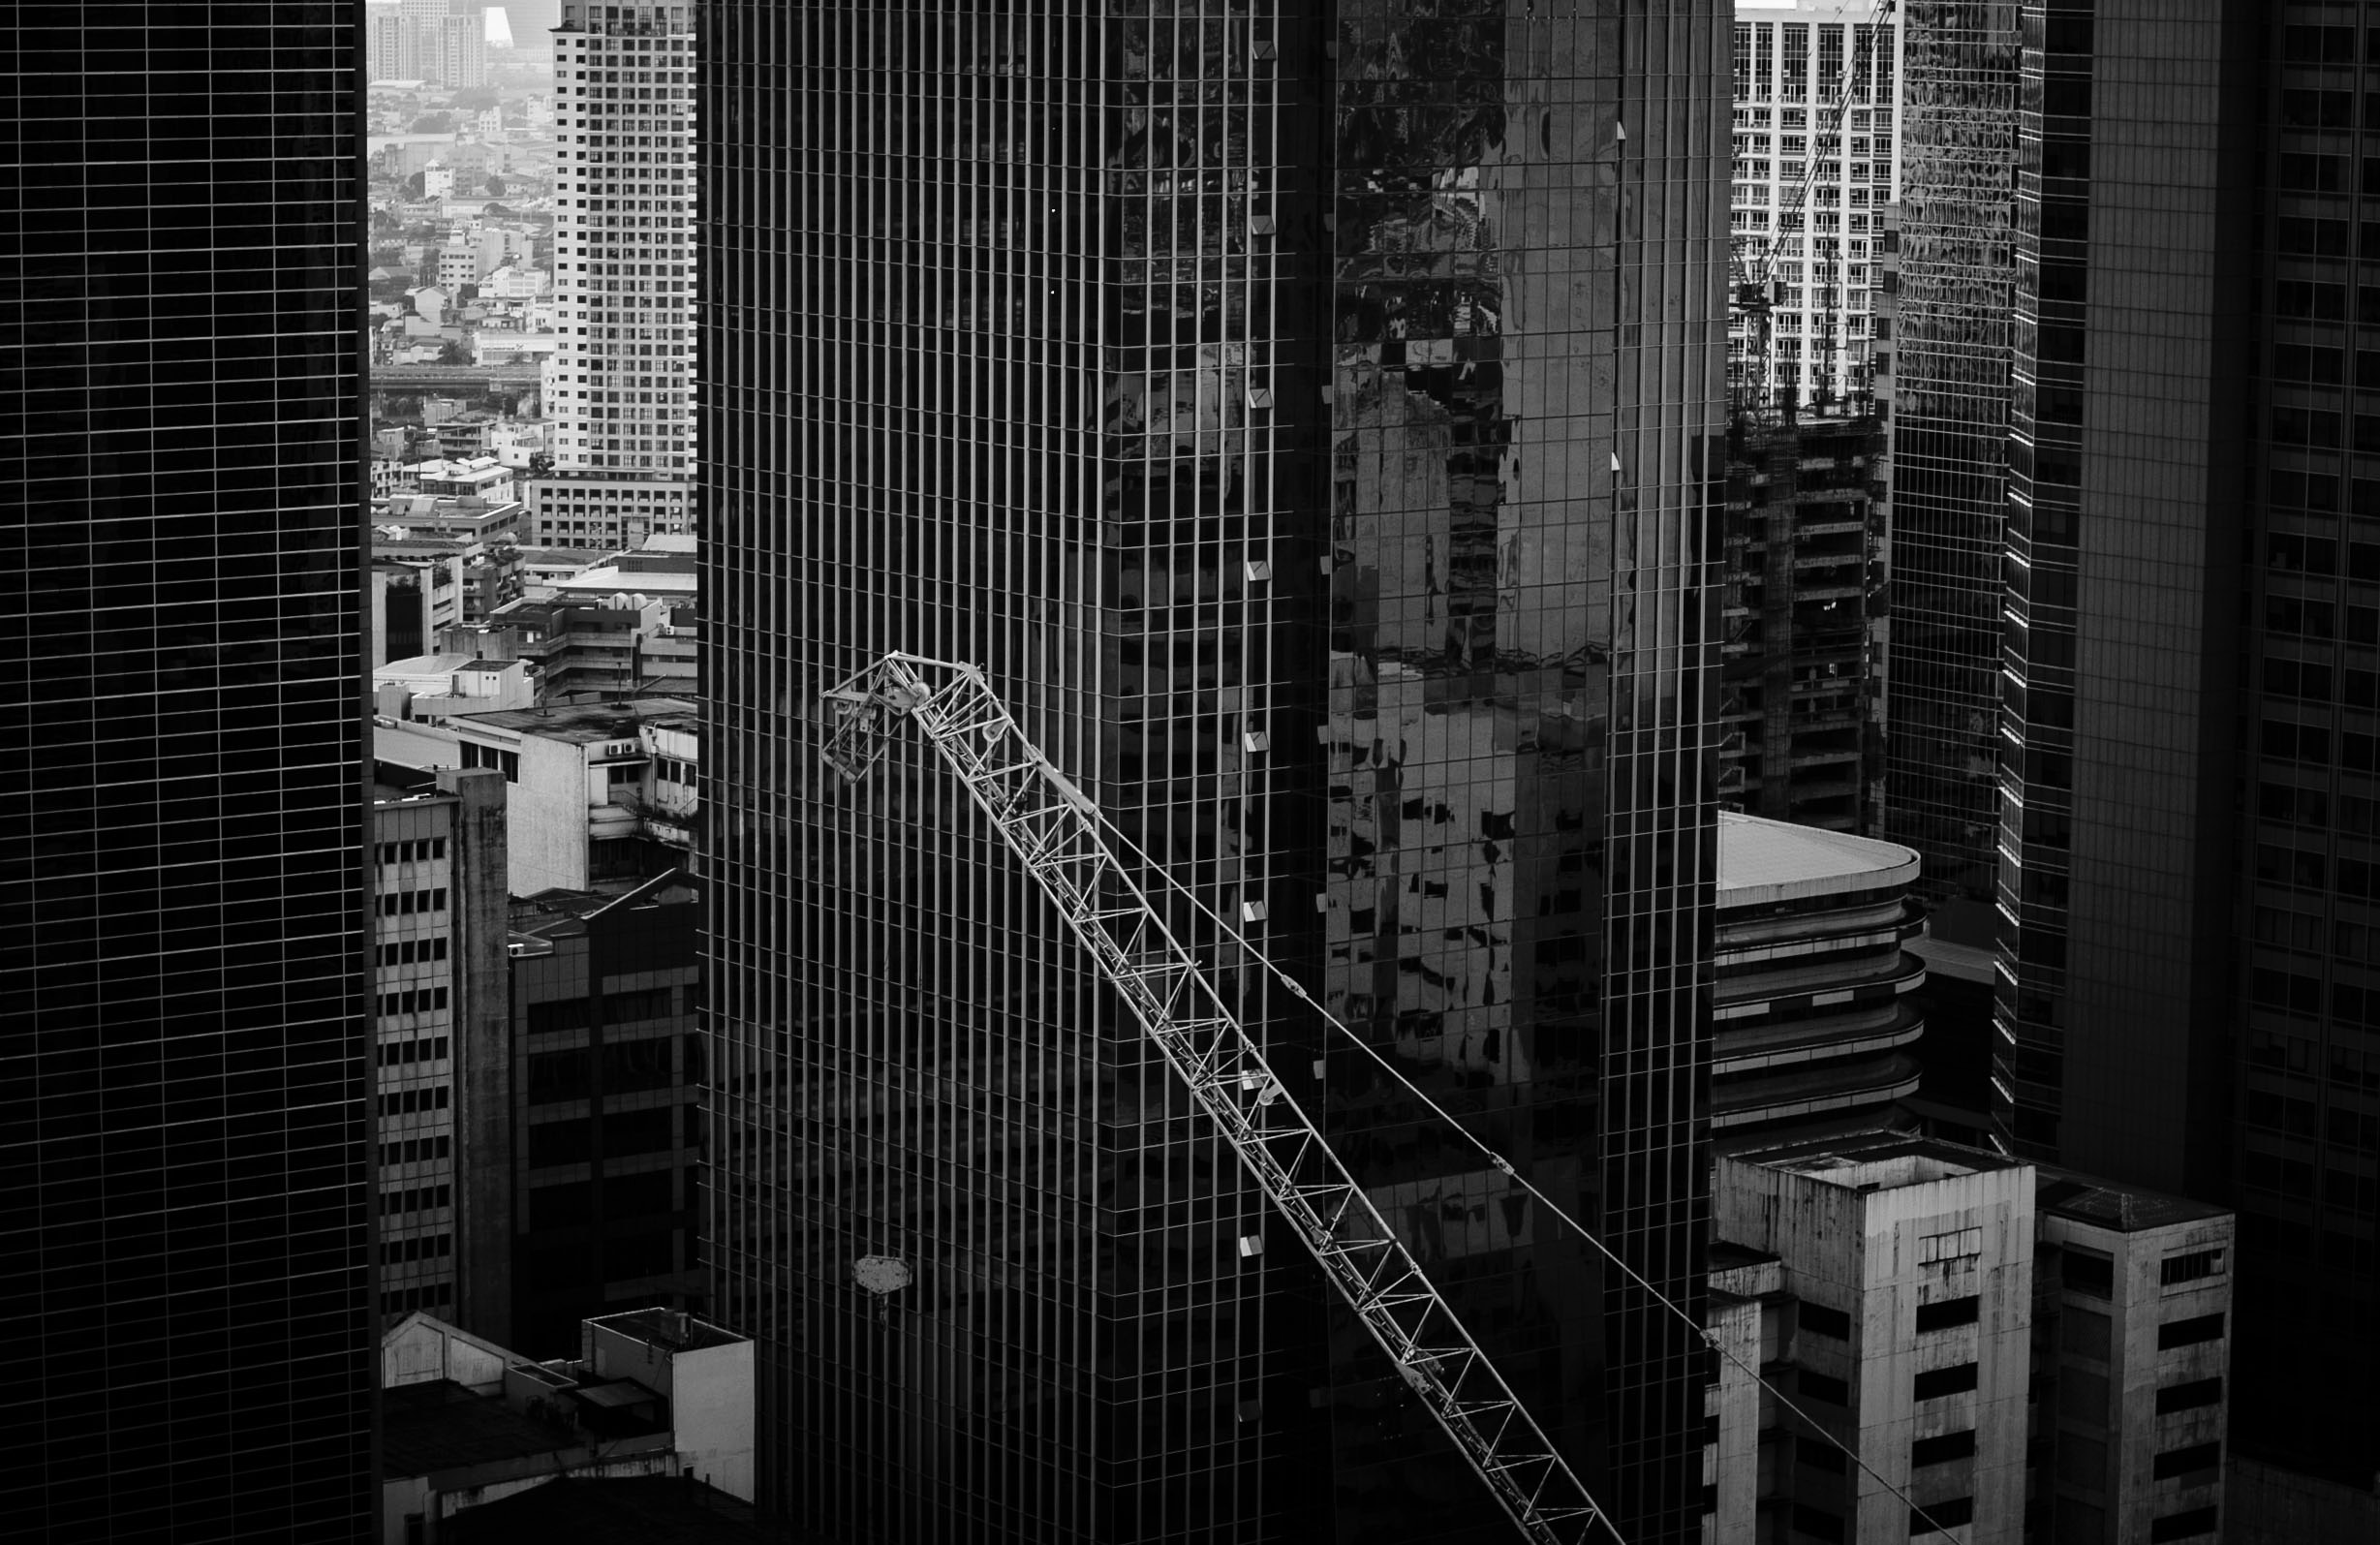 Glass High Rise Building On Low Angle Photography At